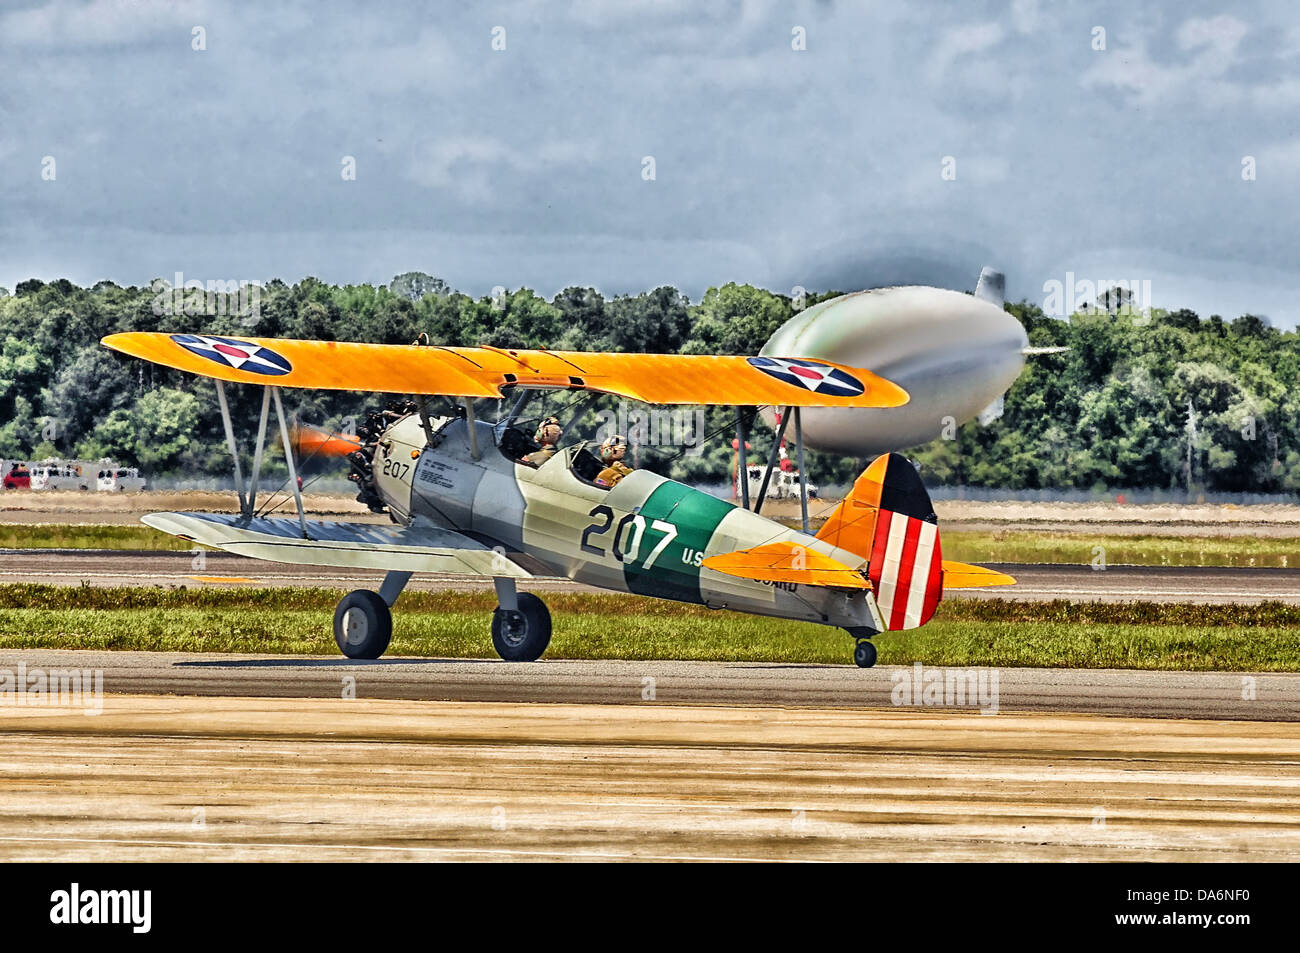 jacksonville florida airplane bi-wing old classic - Stock Image